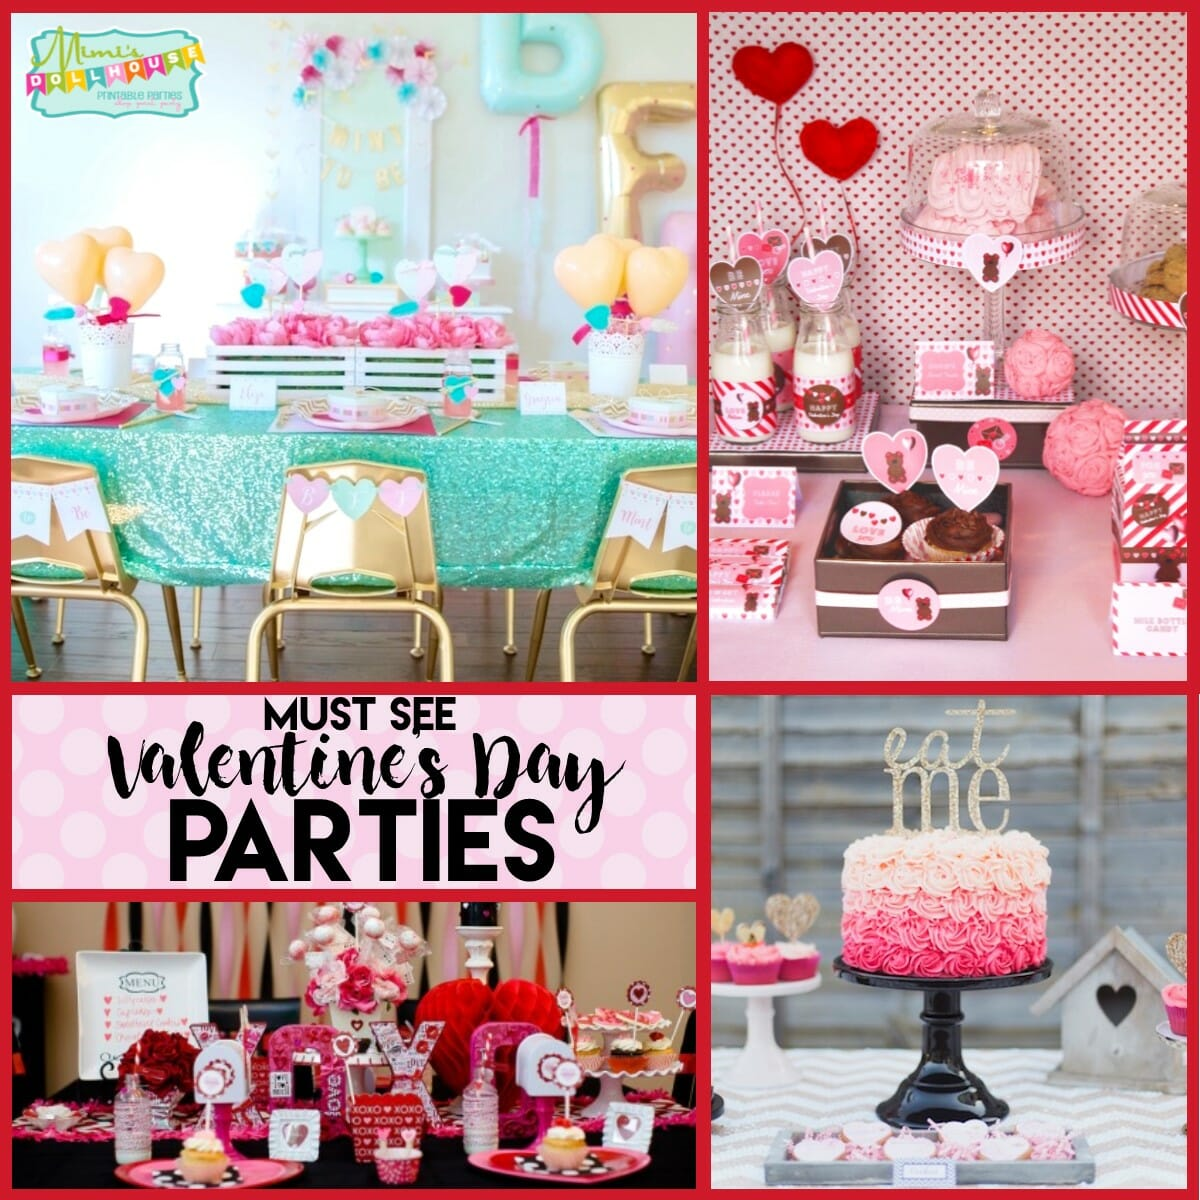 Valentine's Day Party: 10 Must See Valentine's Day Parties.